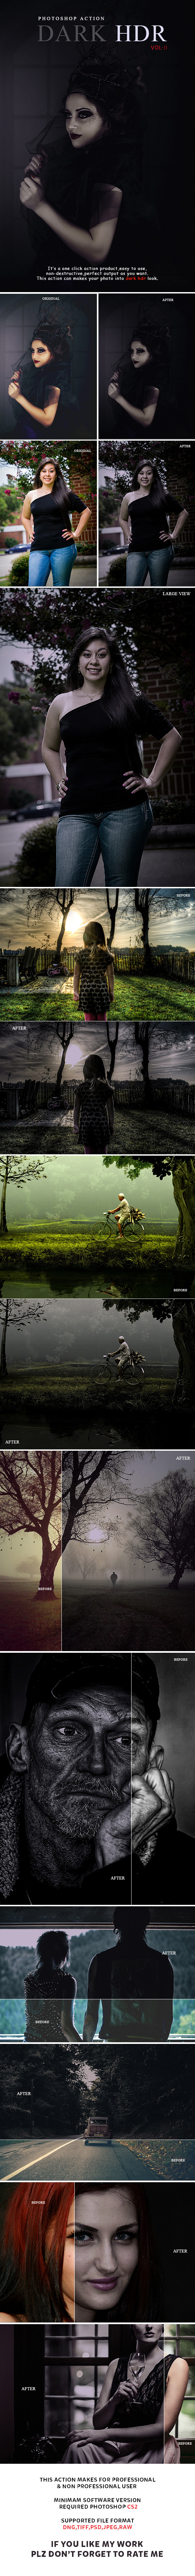 Dark Hdr Vol-2 Photoshop Action - Photo Effects Actions